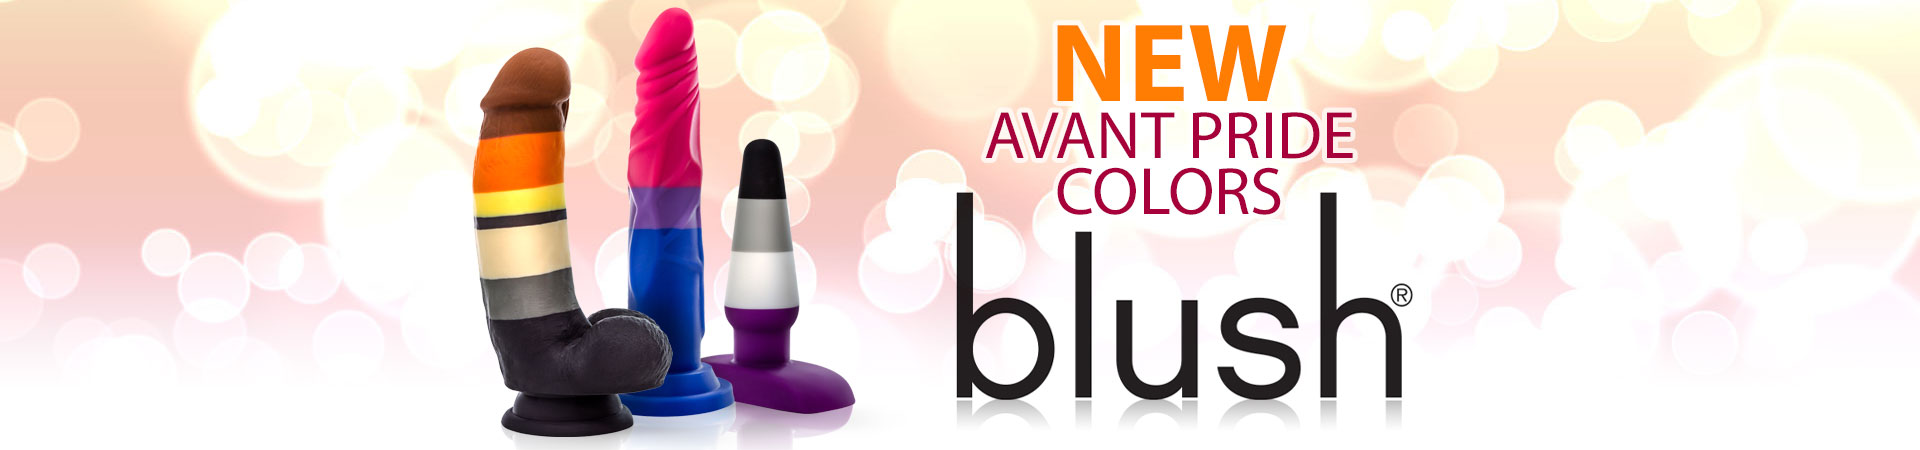 New Avant Pride Colors From Blush